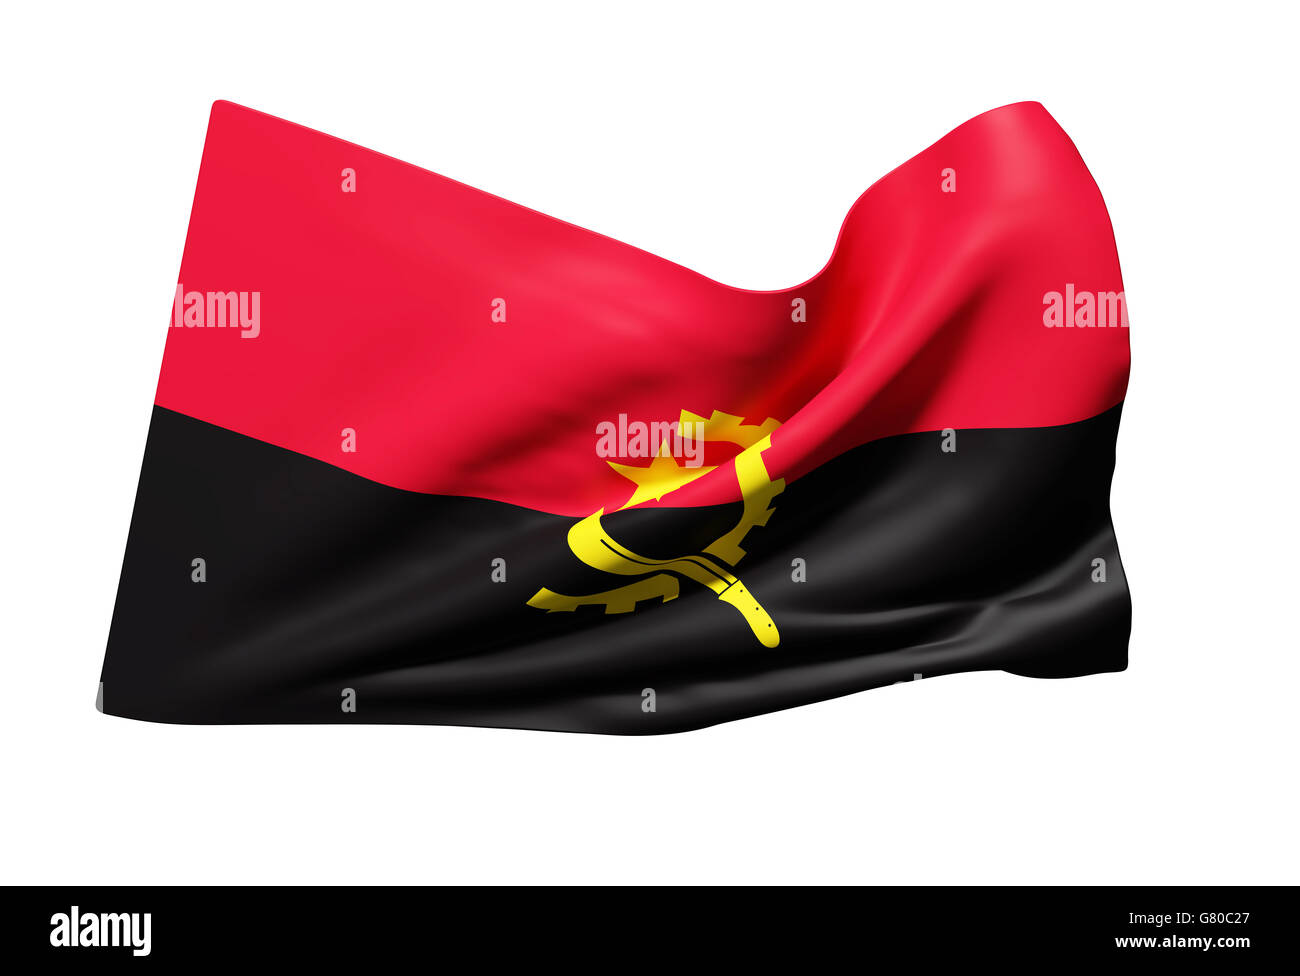 3d rendering of Republic of Angola flag waving - Stock Image